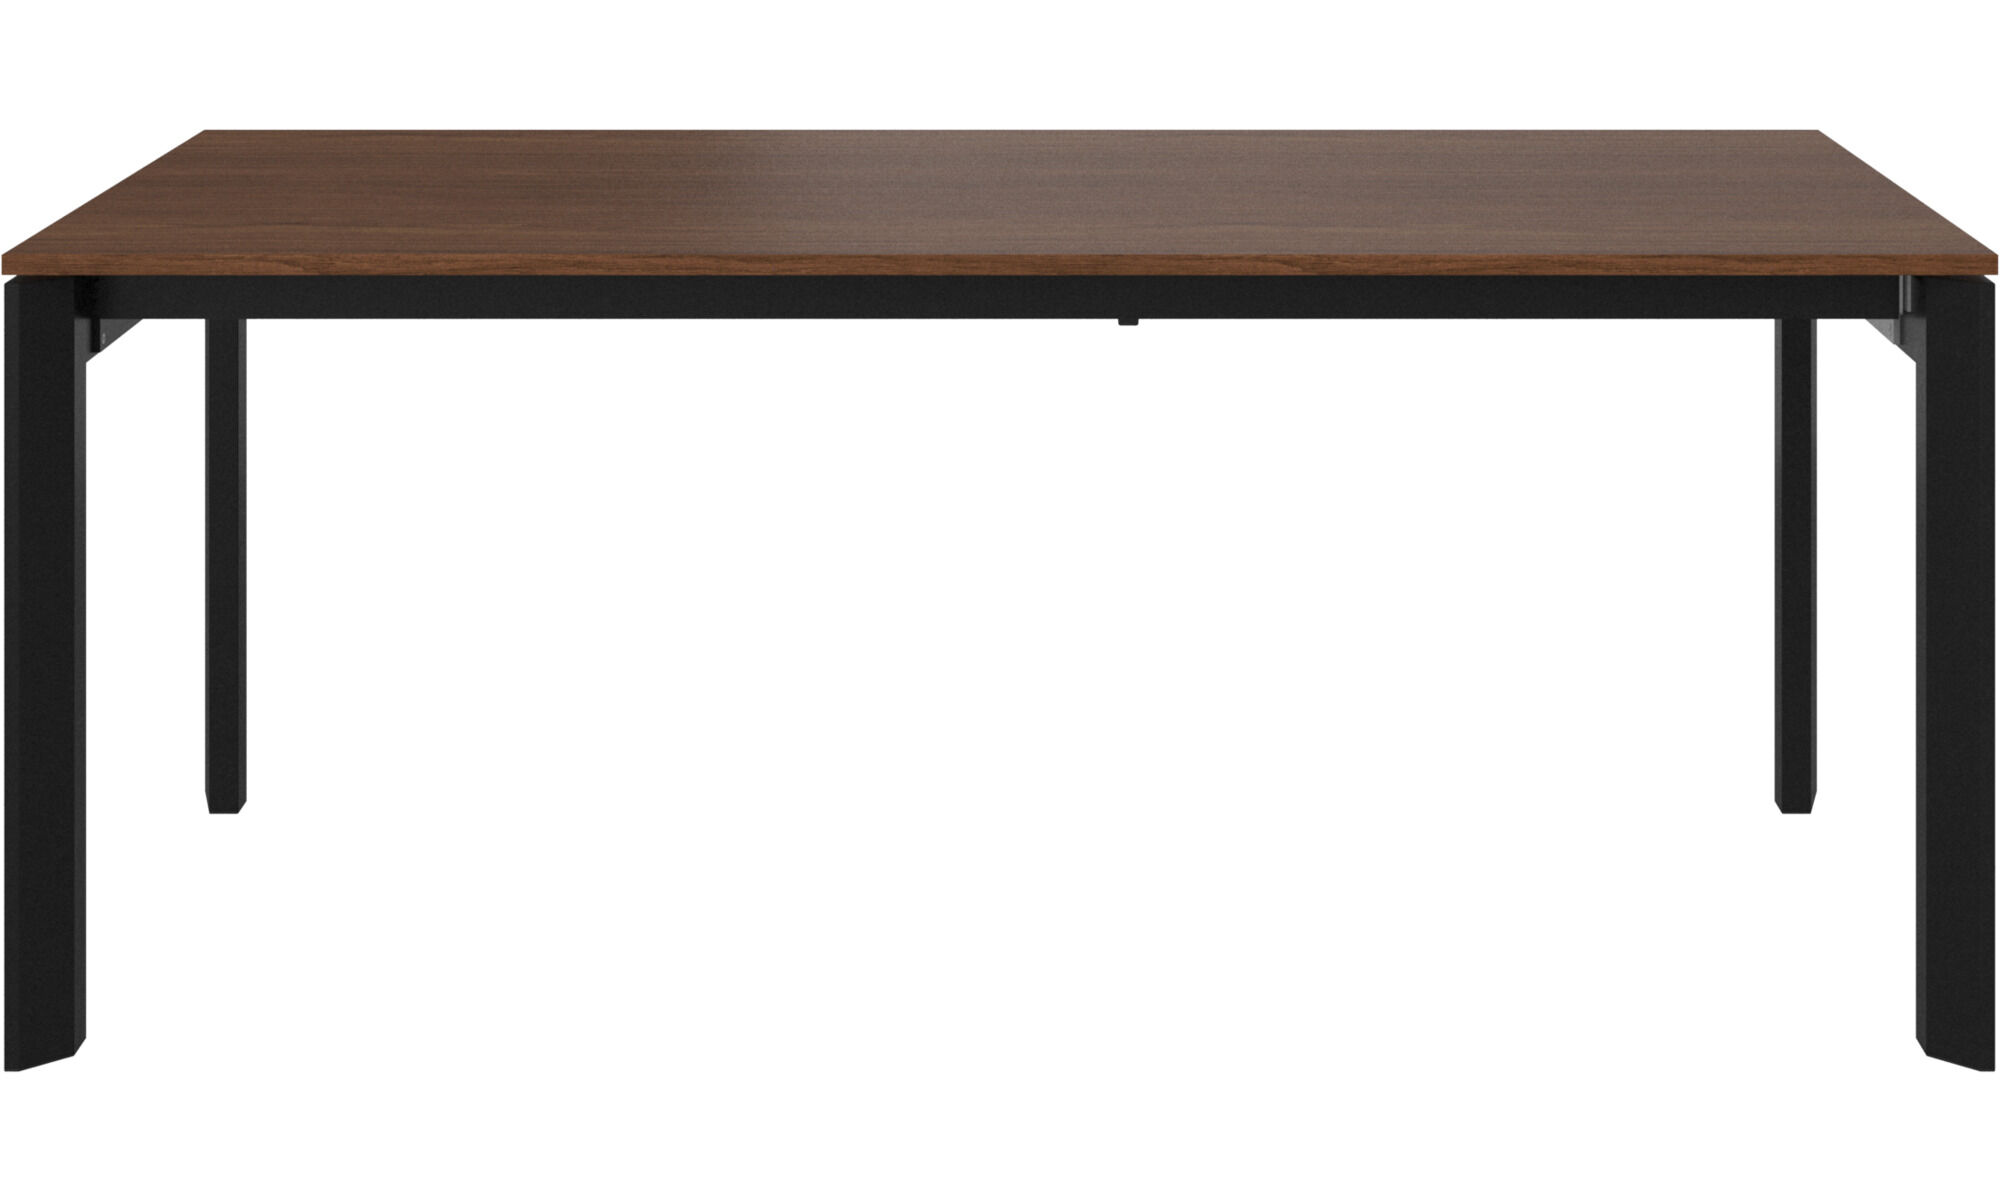 Dining Tables   Lyon Table With Supplementary Tabletop   Rectangular    Brown   Walnut